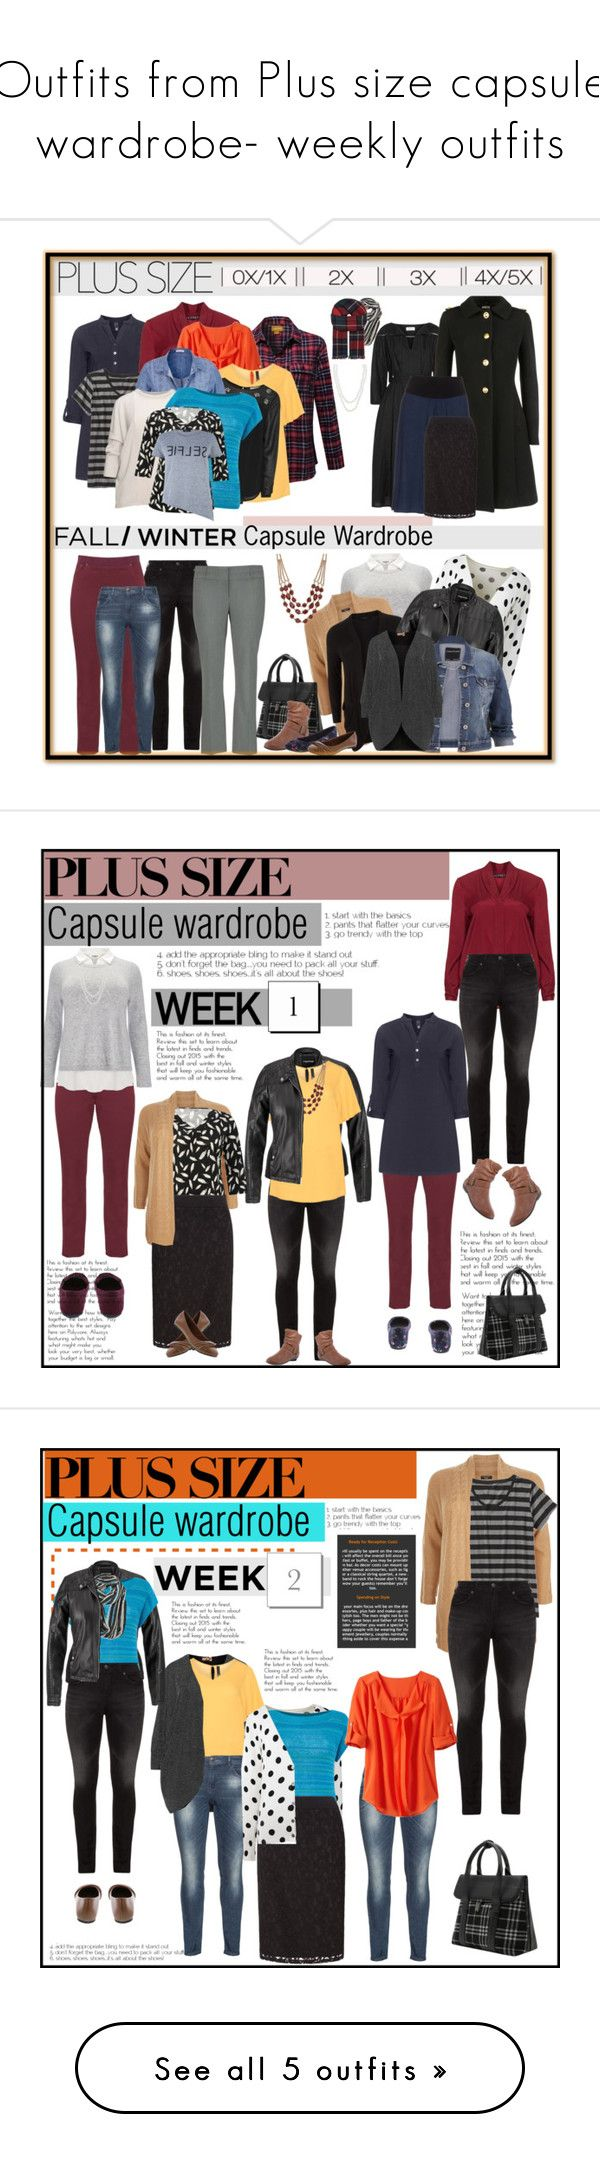 """Outfits from Plus size capsule wardrobe- weekly outfits"" by budding-designer ❤ liked on Polyvore featuring Studio 8, Silver Jeans Co., Raphaela by Brax, ZJ Denim Identity, Zimmermann, Miu Miu, maurices, Manon Baptiste, Jette and TravelSmith"